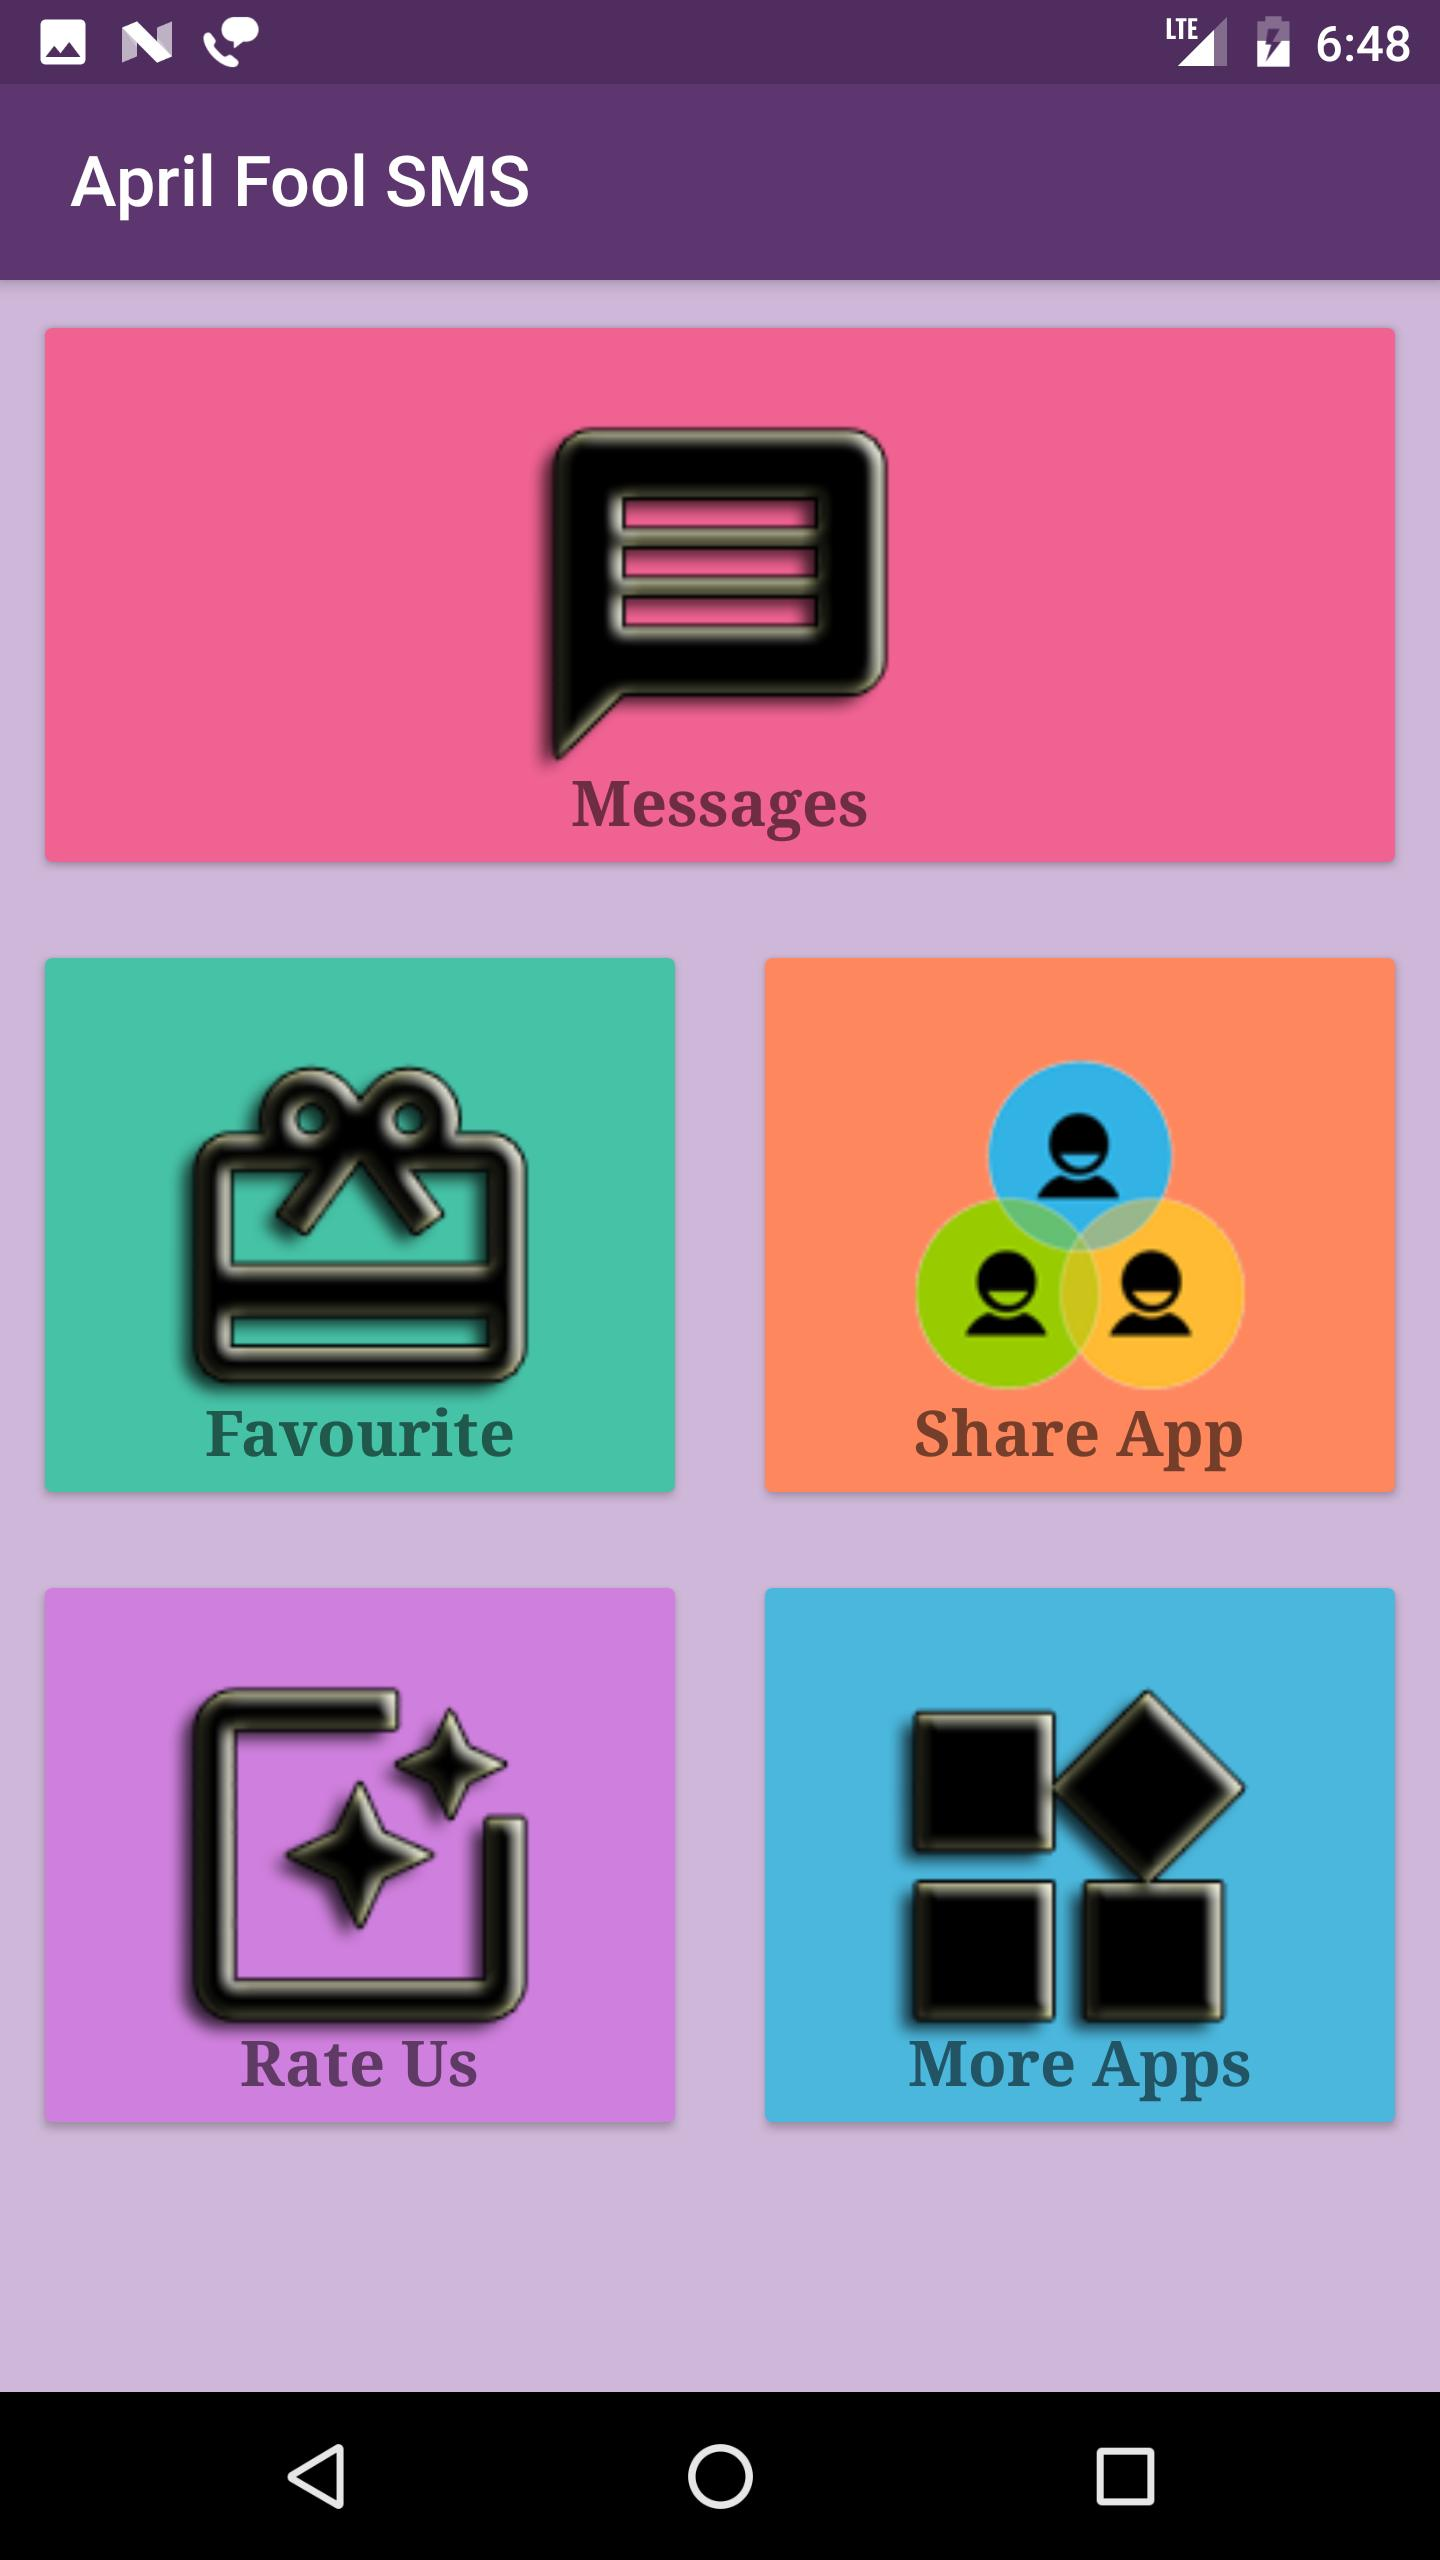 April Fool Hindi SMS for Android - APK Download